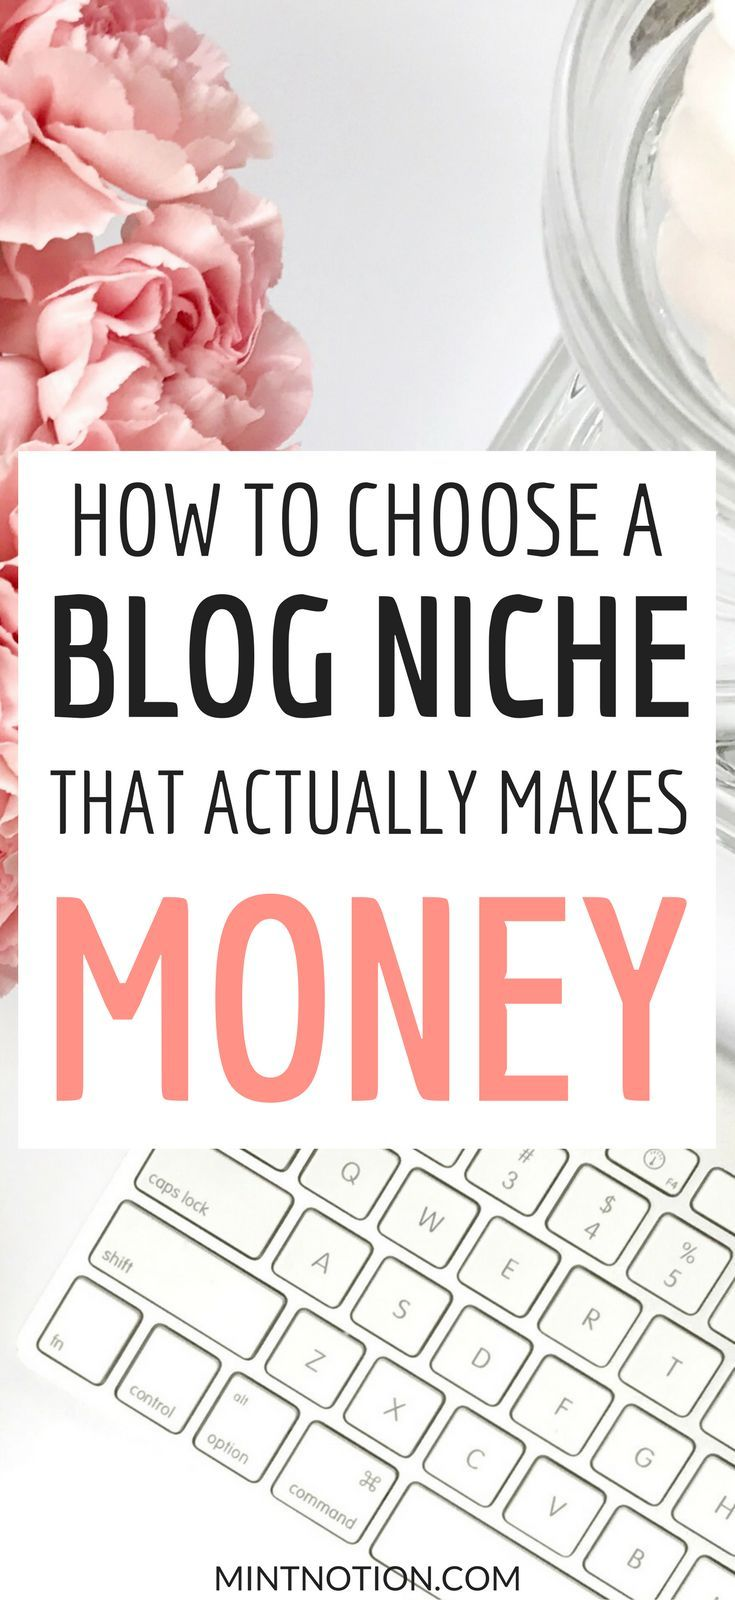 Want to start a blog and make money online? Use these tips to choose a profitable blog niche. Having a strong blog niche is important if you want to make money from blogging. Find out the best niches that actually make money in this post! #bloggingtips #makemoneyblogging #workfromhome